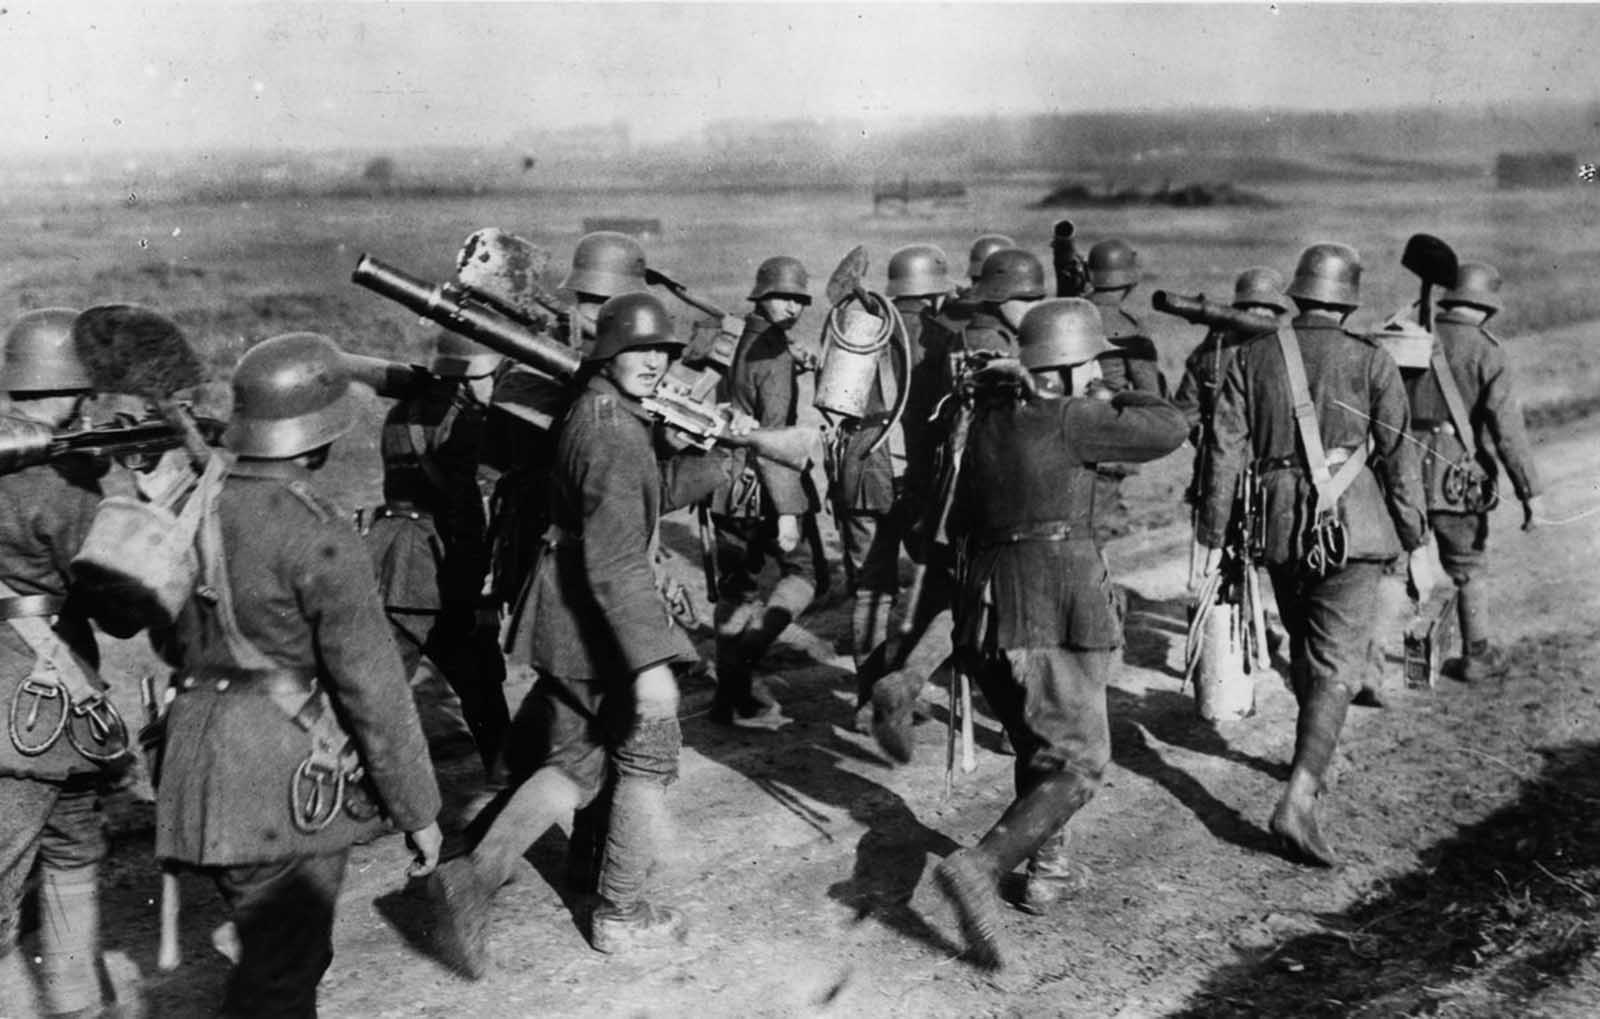 German troops carry Lewis gun equipment.